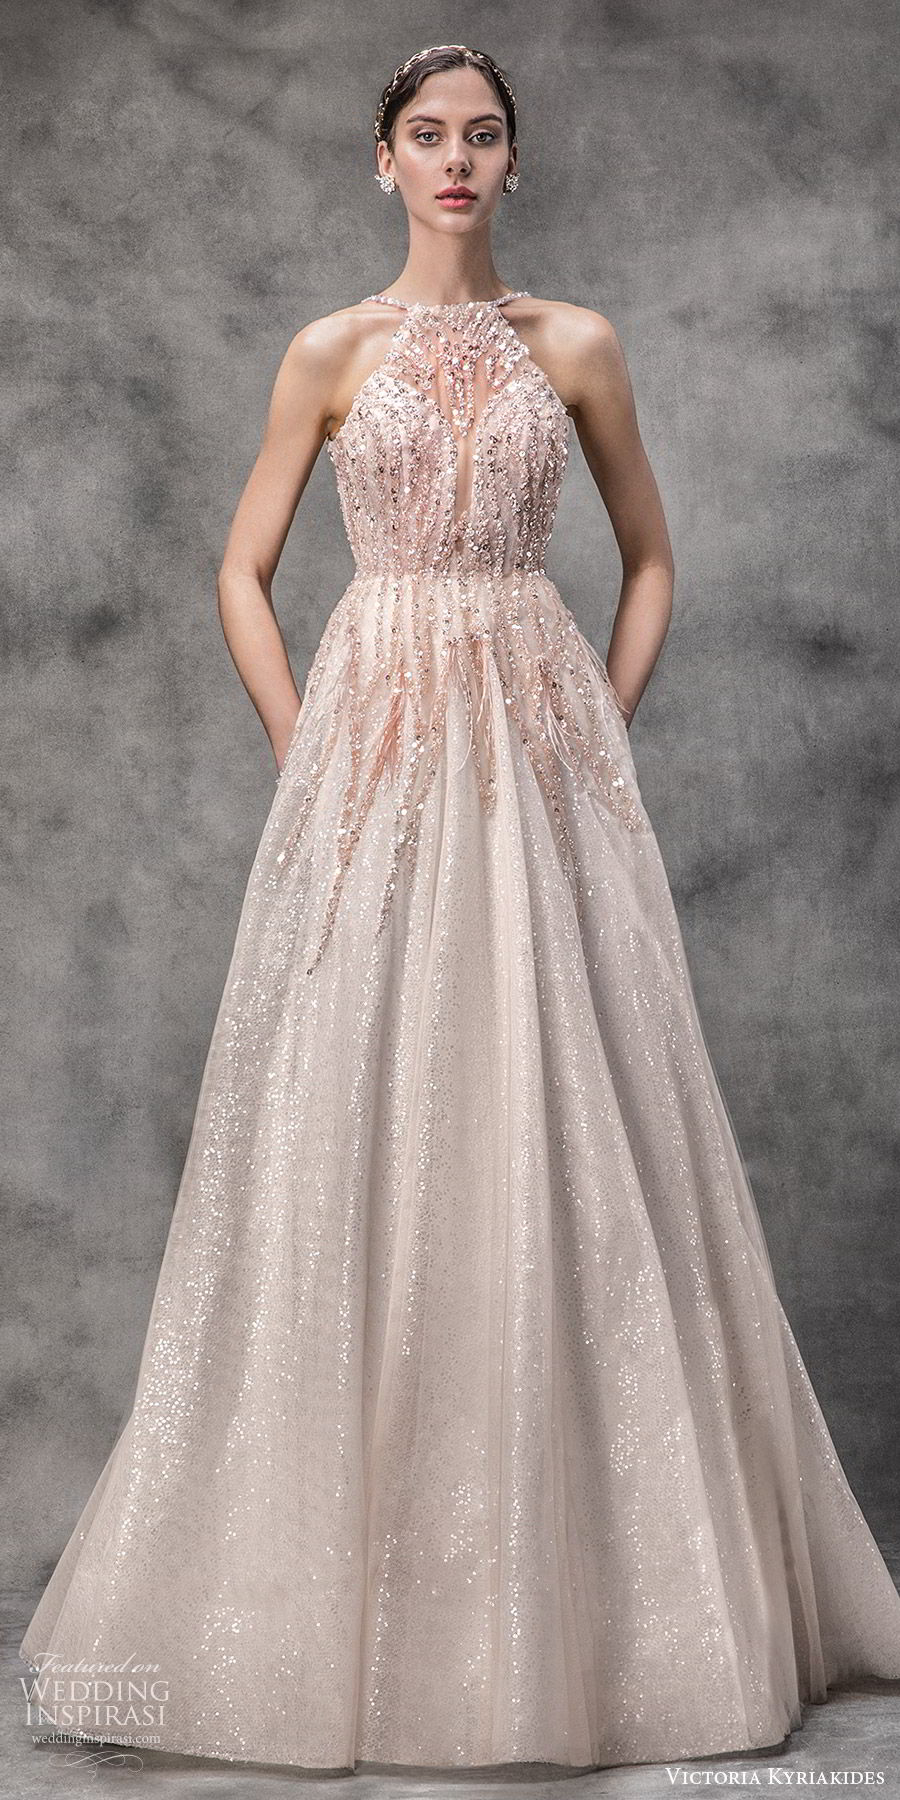 victoria kyriakides spring 2020 bridal sleeveless halter neck sheer bodice sweetheart fully embellished a line ball gown wedding dress (4) blush color glitzy romantic mv